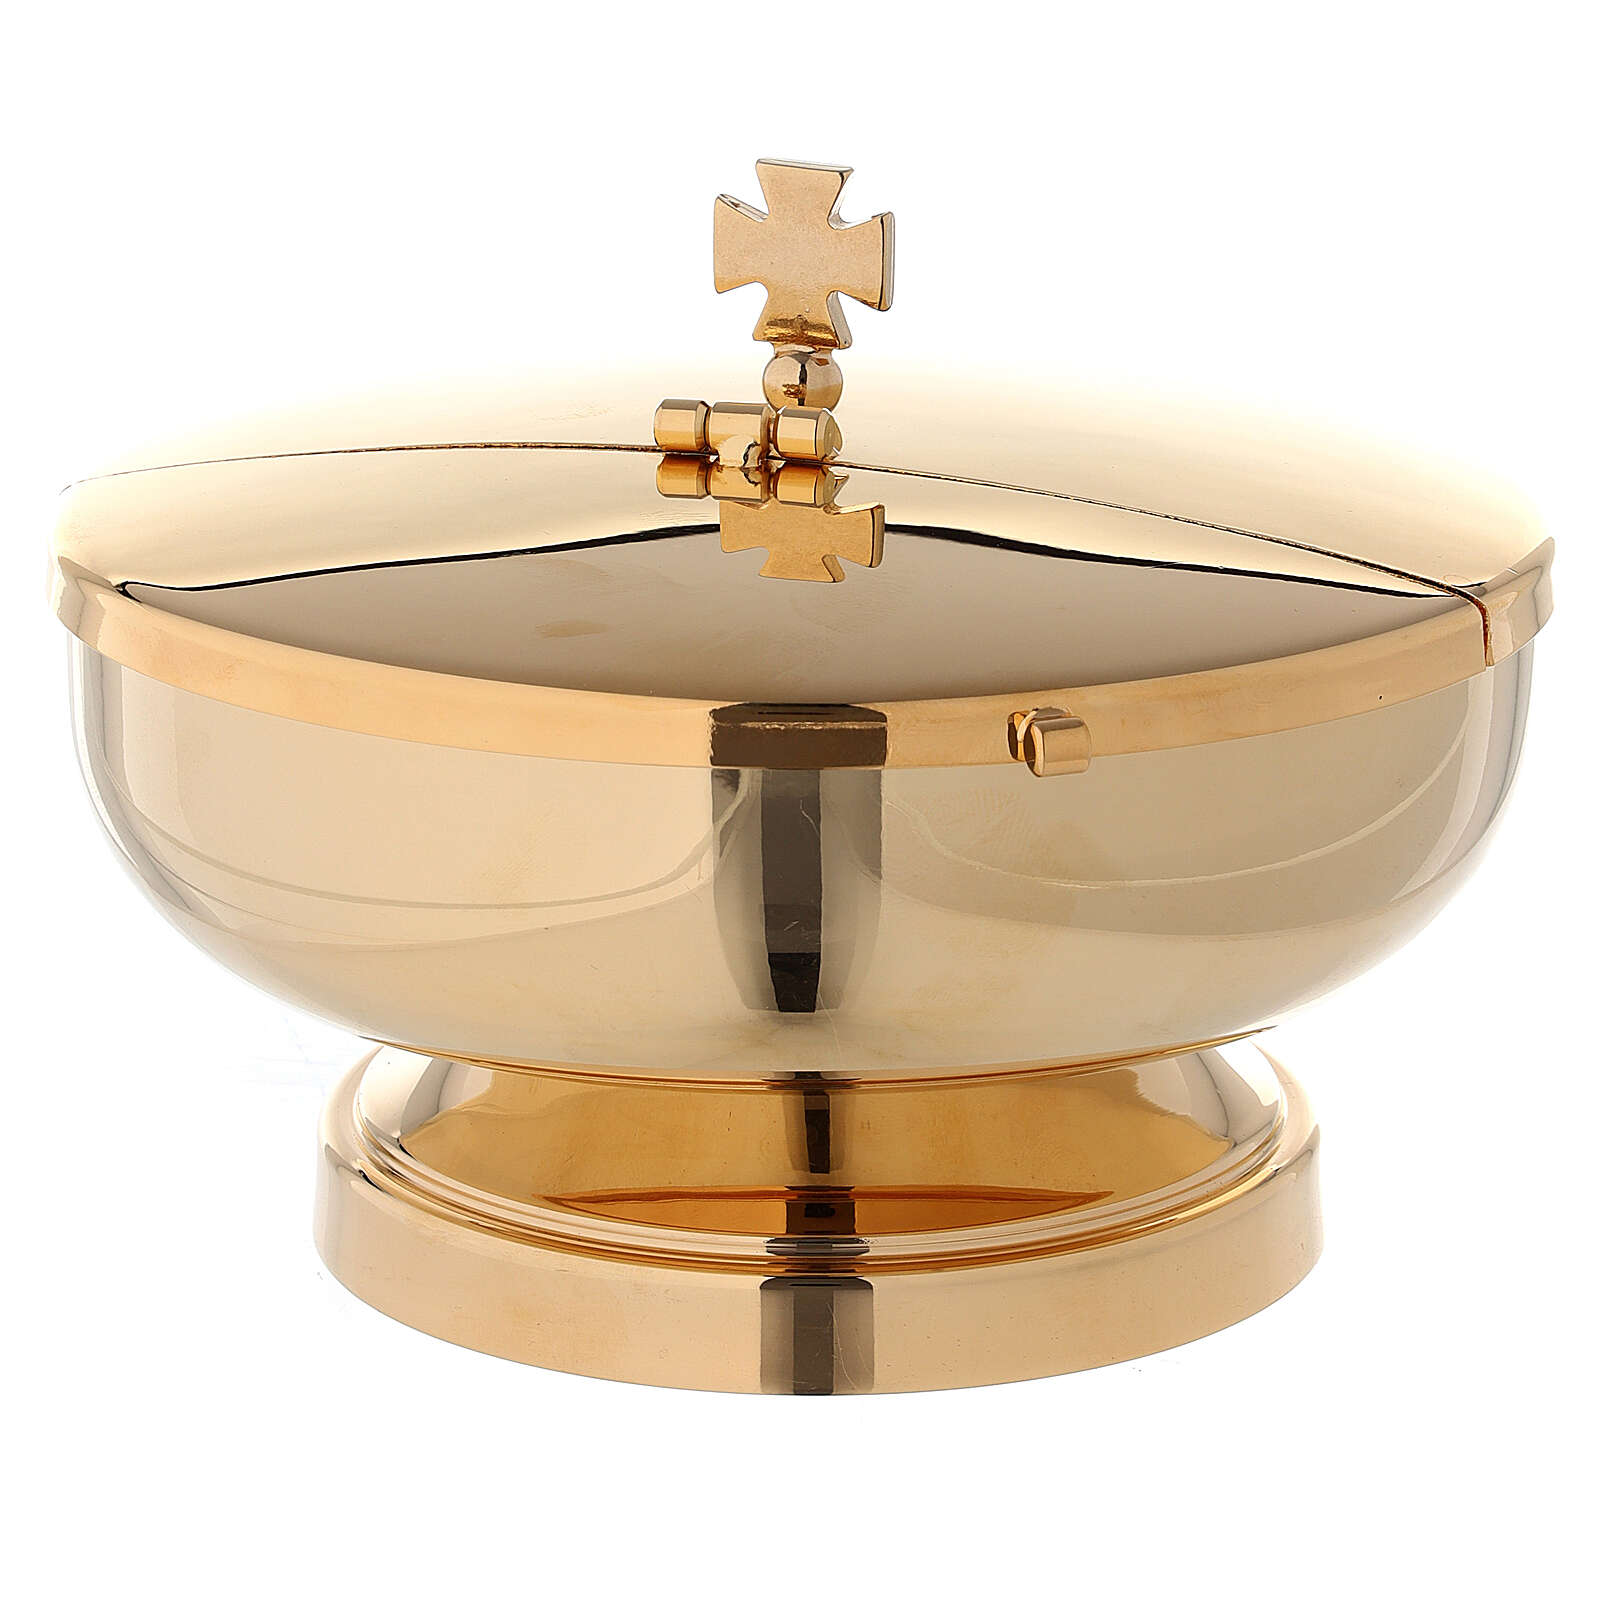 Ciborium in 24-karat gold plated brass with openable cover diam. 5 1/2 in 4